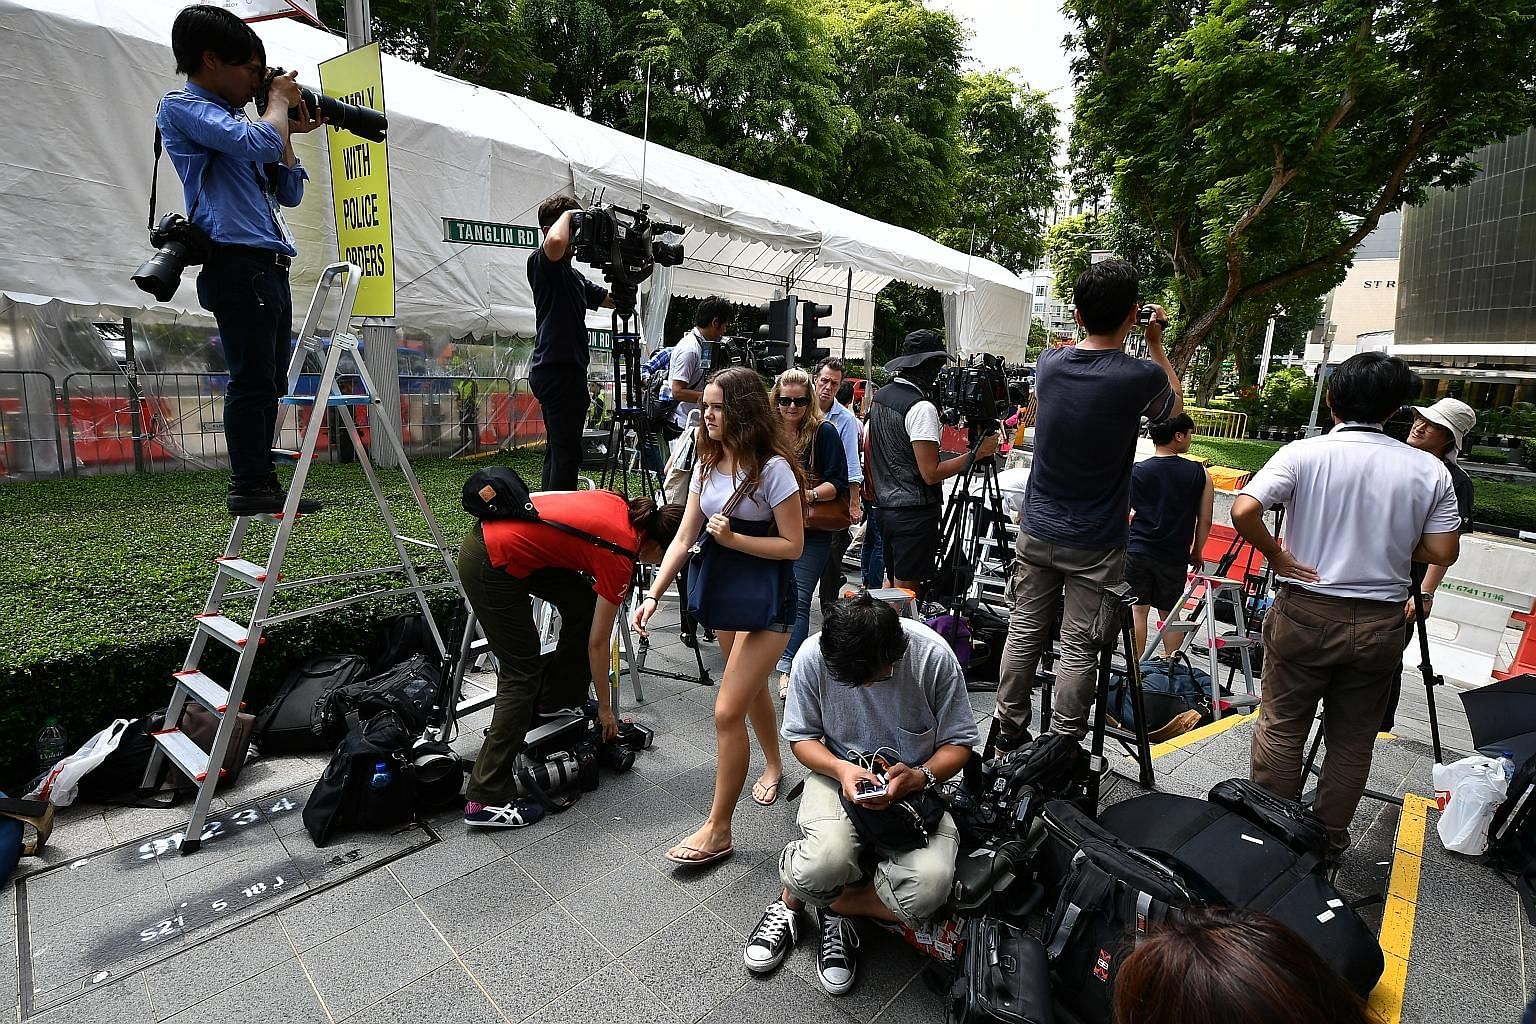 Media members yesterday staking out Tanglin Place, opposite The St Regis Singapore, where North Korean leader Kim Jong Un is staying.